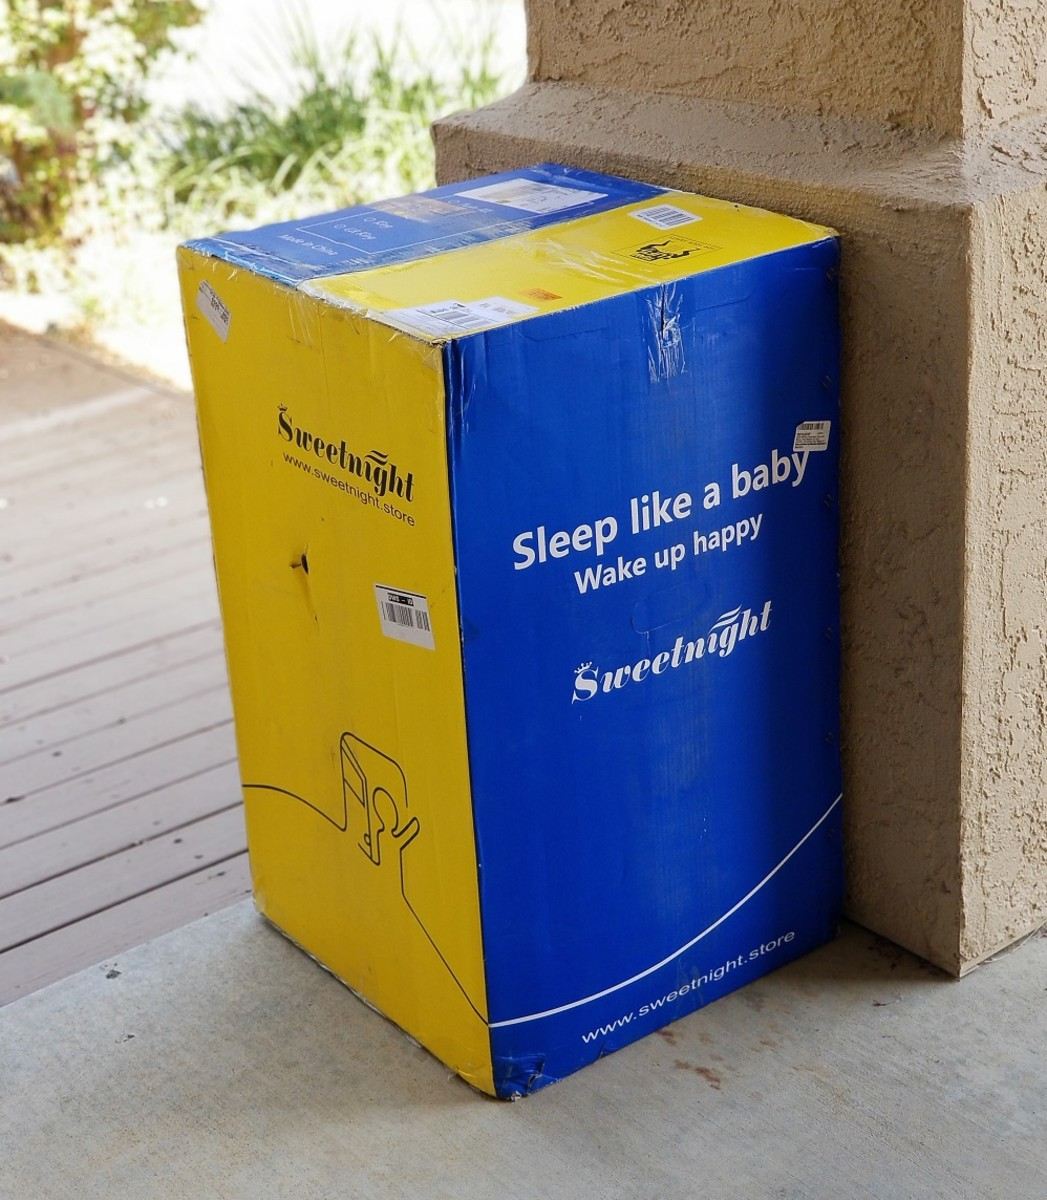 As promised, the Sweetnight mattress arrived at my door within two days of ordering it on Amazon.